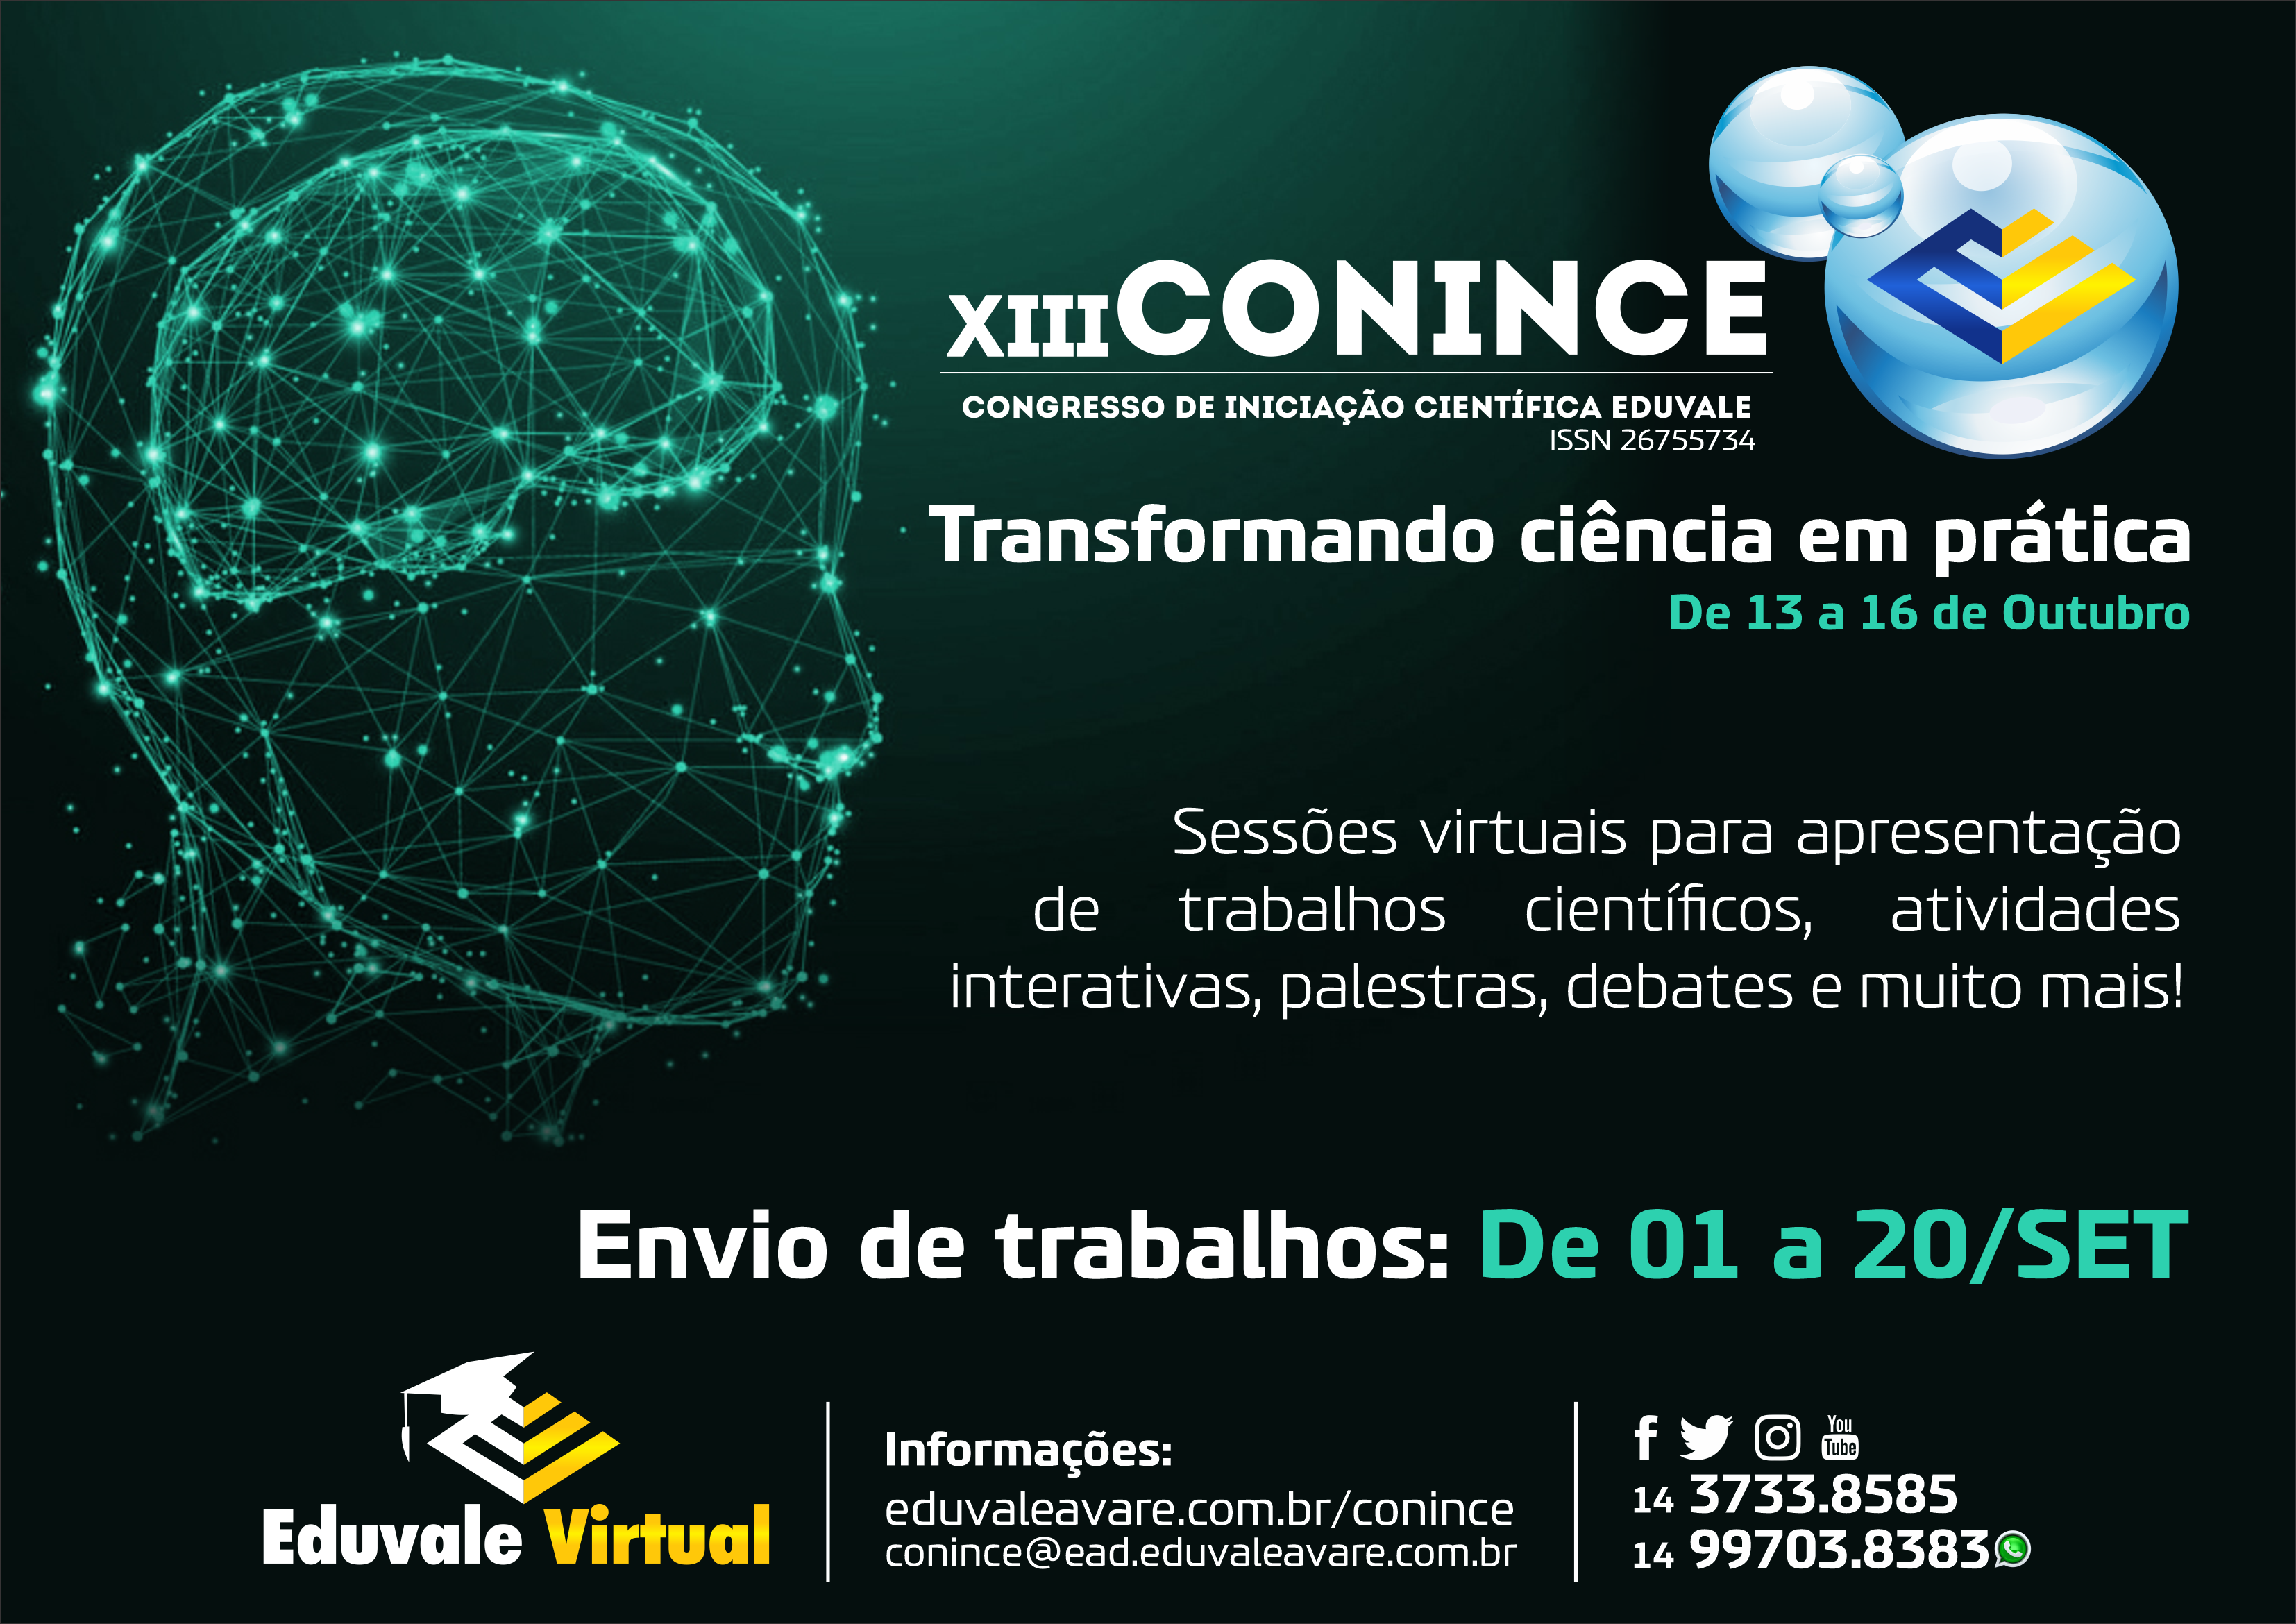 XIII CONINCE